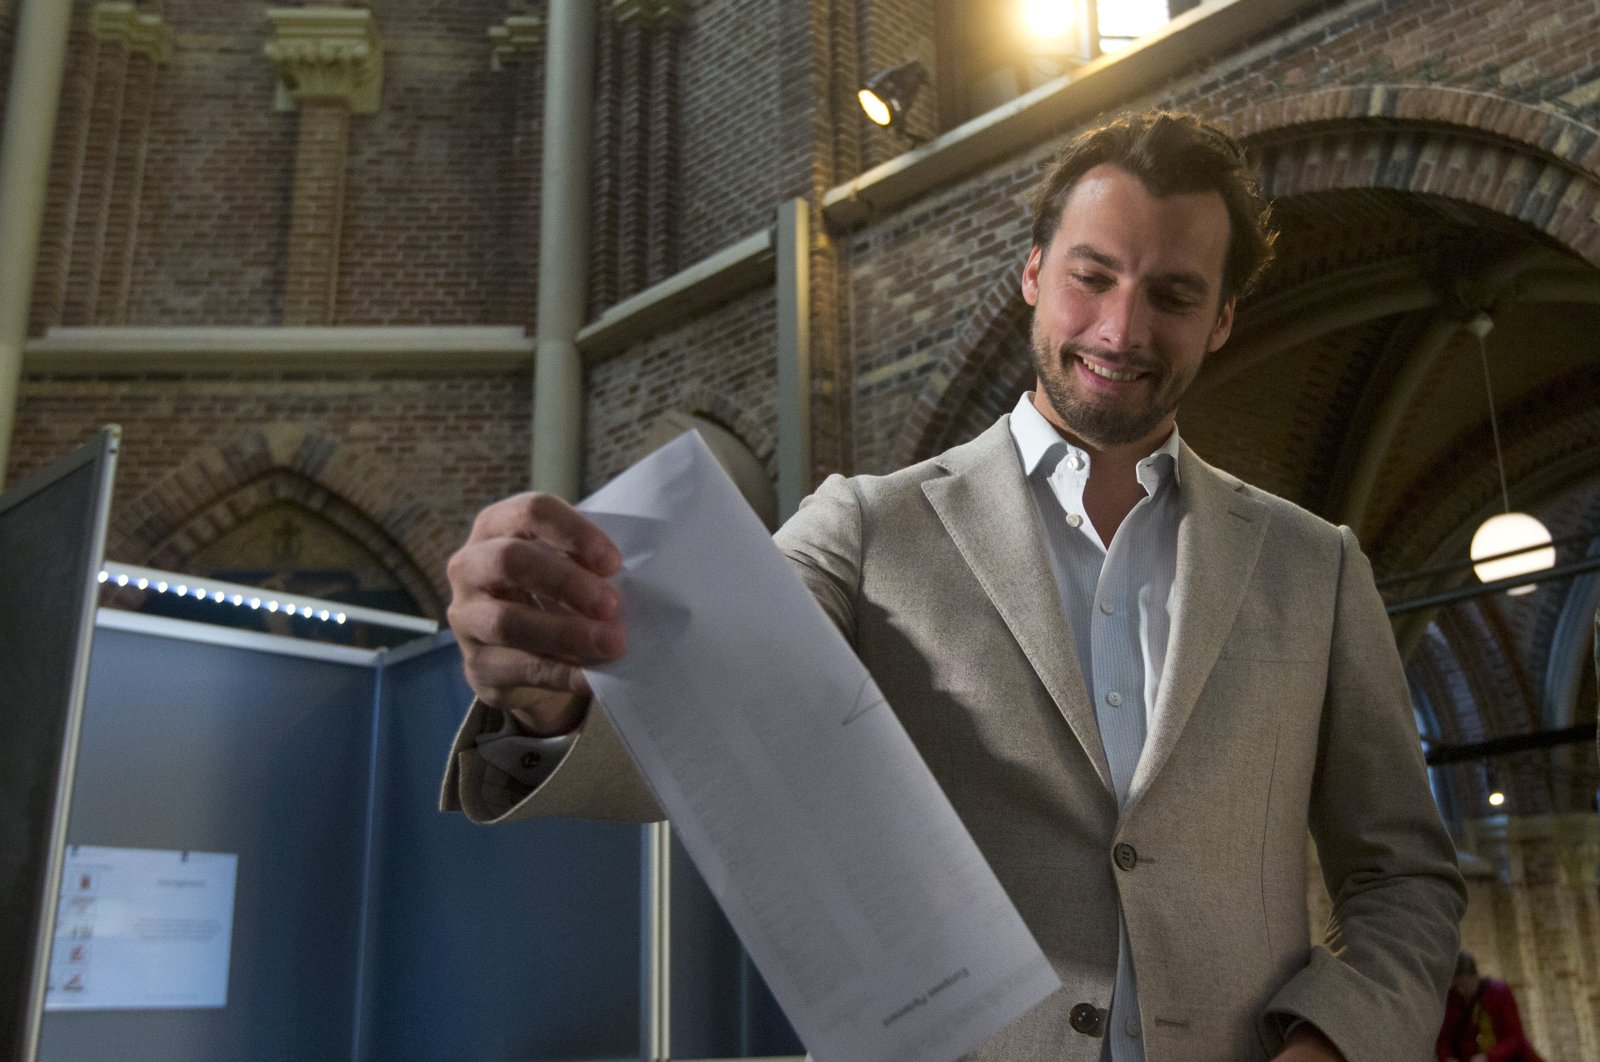 Thierry Baudet, leader of the populist party Forum for Democracy, casts his ballot for the European elections in Amsterdam, Netherlands, May 23, 2019. (AP Photo)